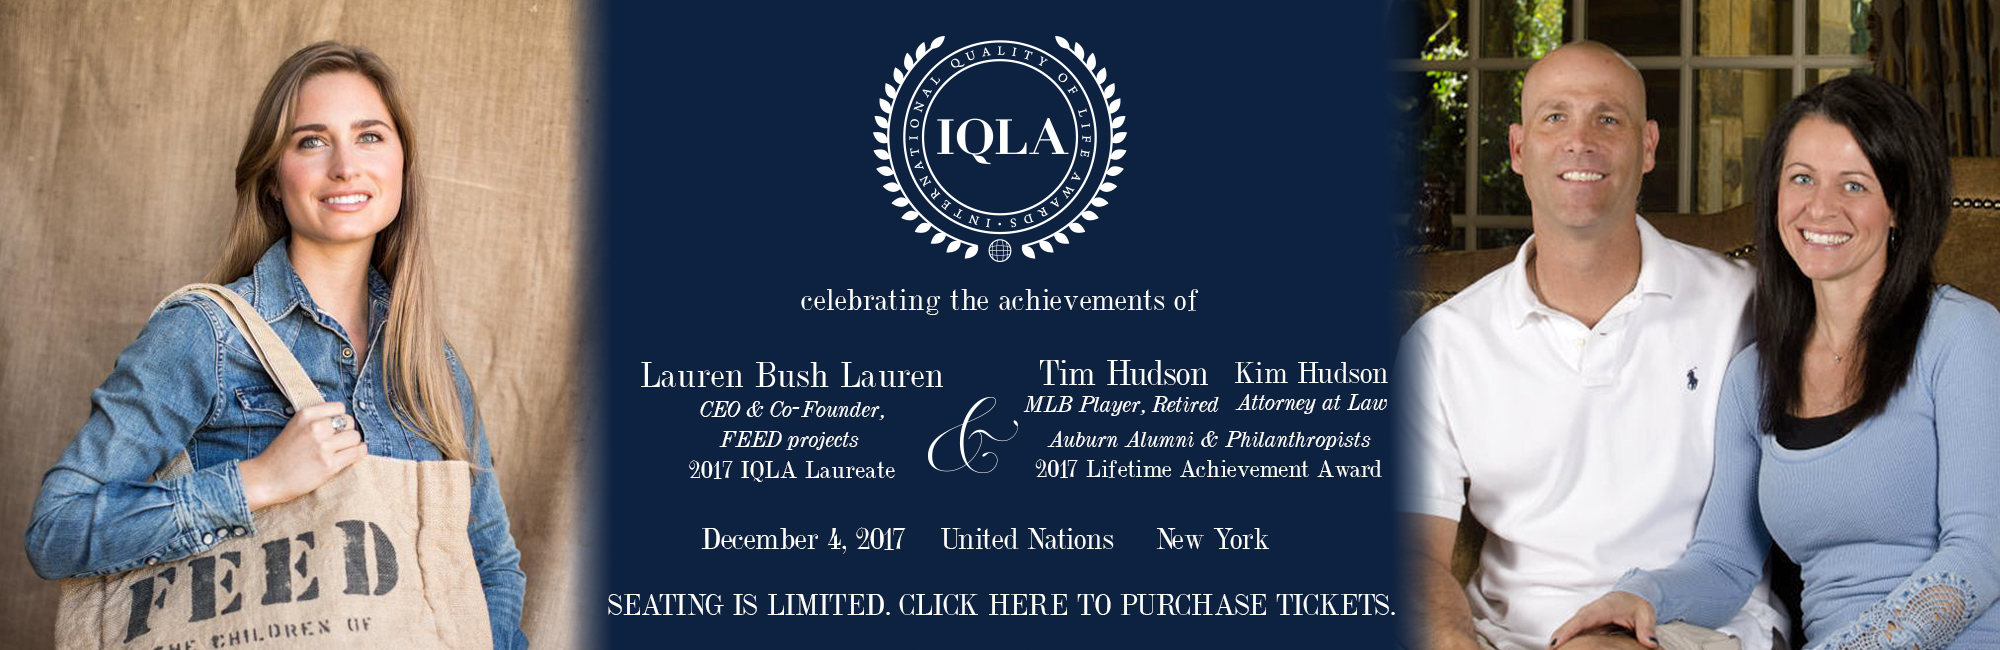 2017 IQLA Laurette and Lifetime Achievement Award winner announcement graphic. Lauren Bush Laurn to the Left and Tim and Kim Hudson to the right.